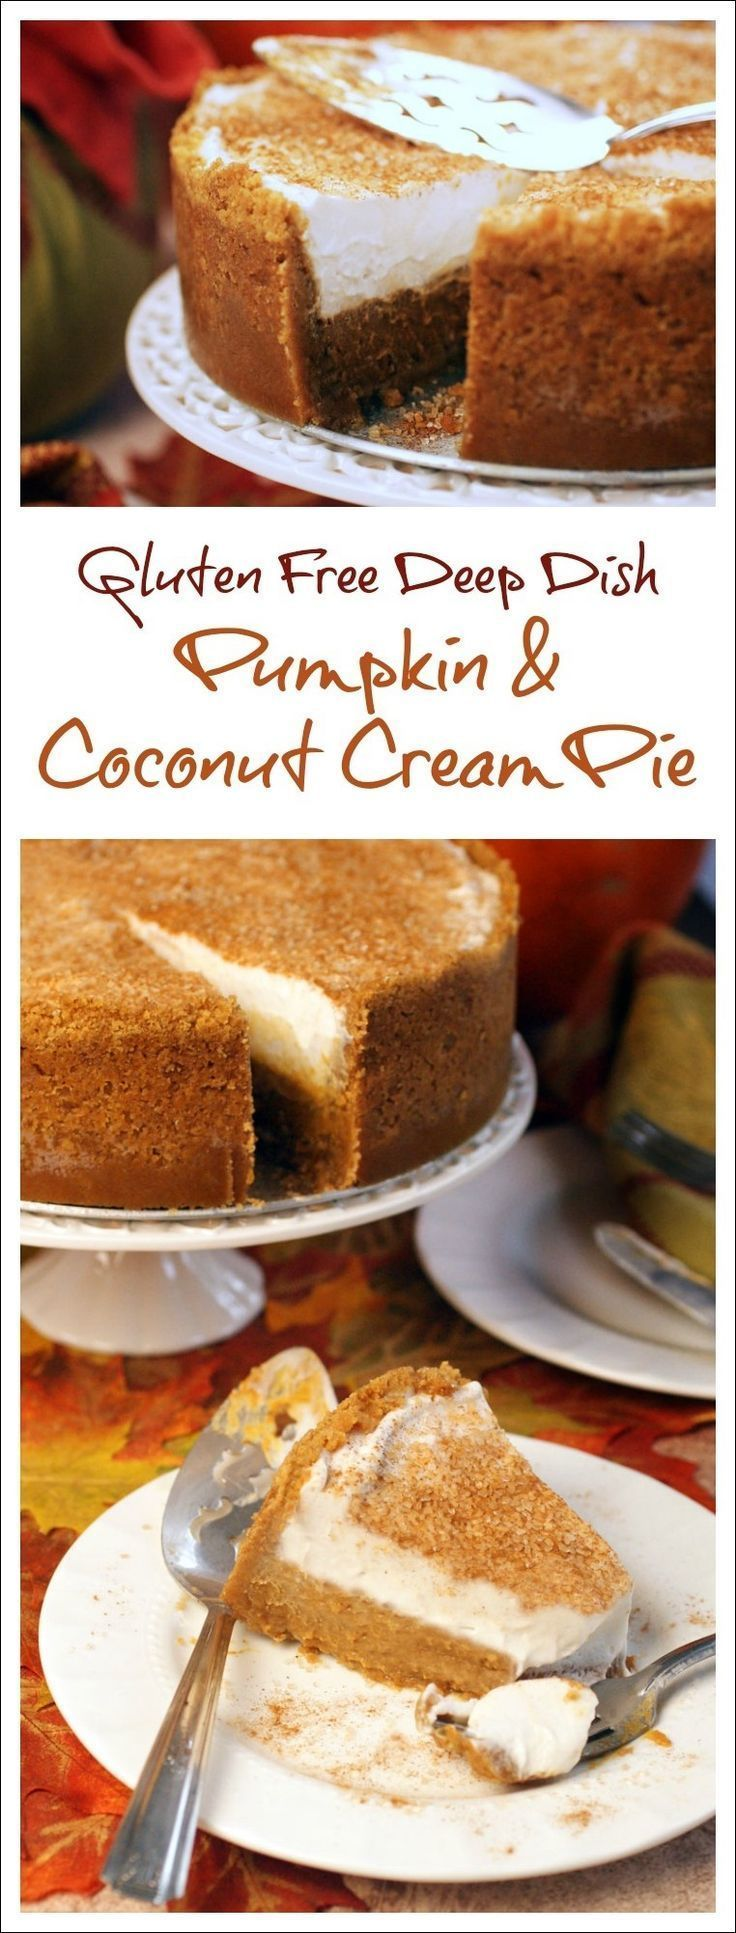 Not only is this Thanksgiving dessert recipe gluten free a